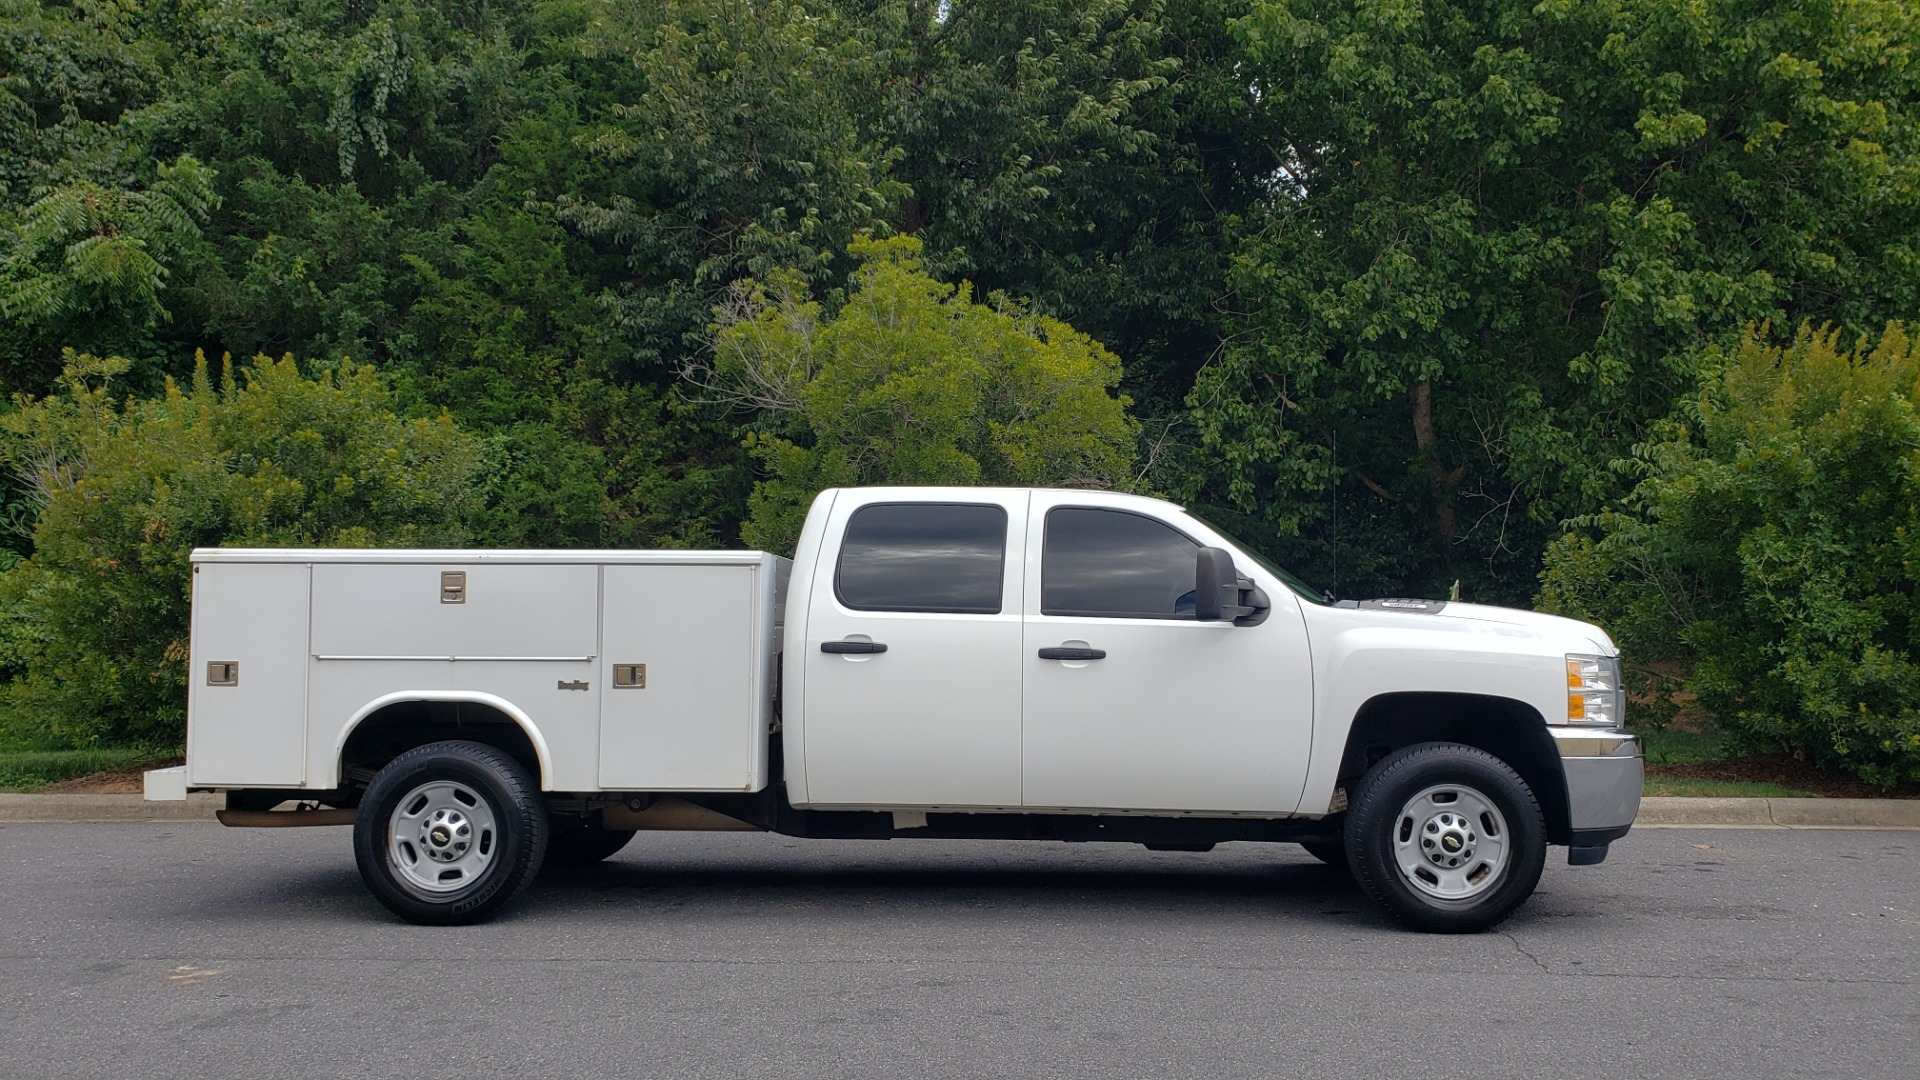 Used 2013 Chevrolet SILVERADO 2500HD 4x4/ CREW CAB/ 6.0L V8/SERVICE BODY/ CRUISE/ HITCH for sale Sold at Formula Imports in Charlotte NC 28227 8